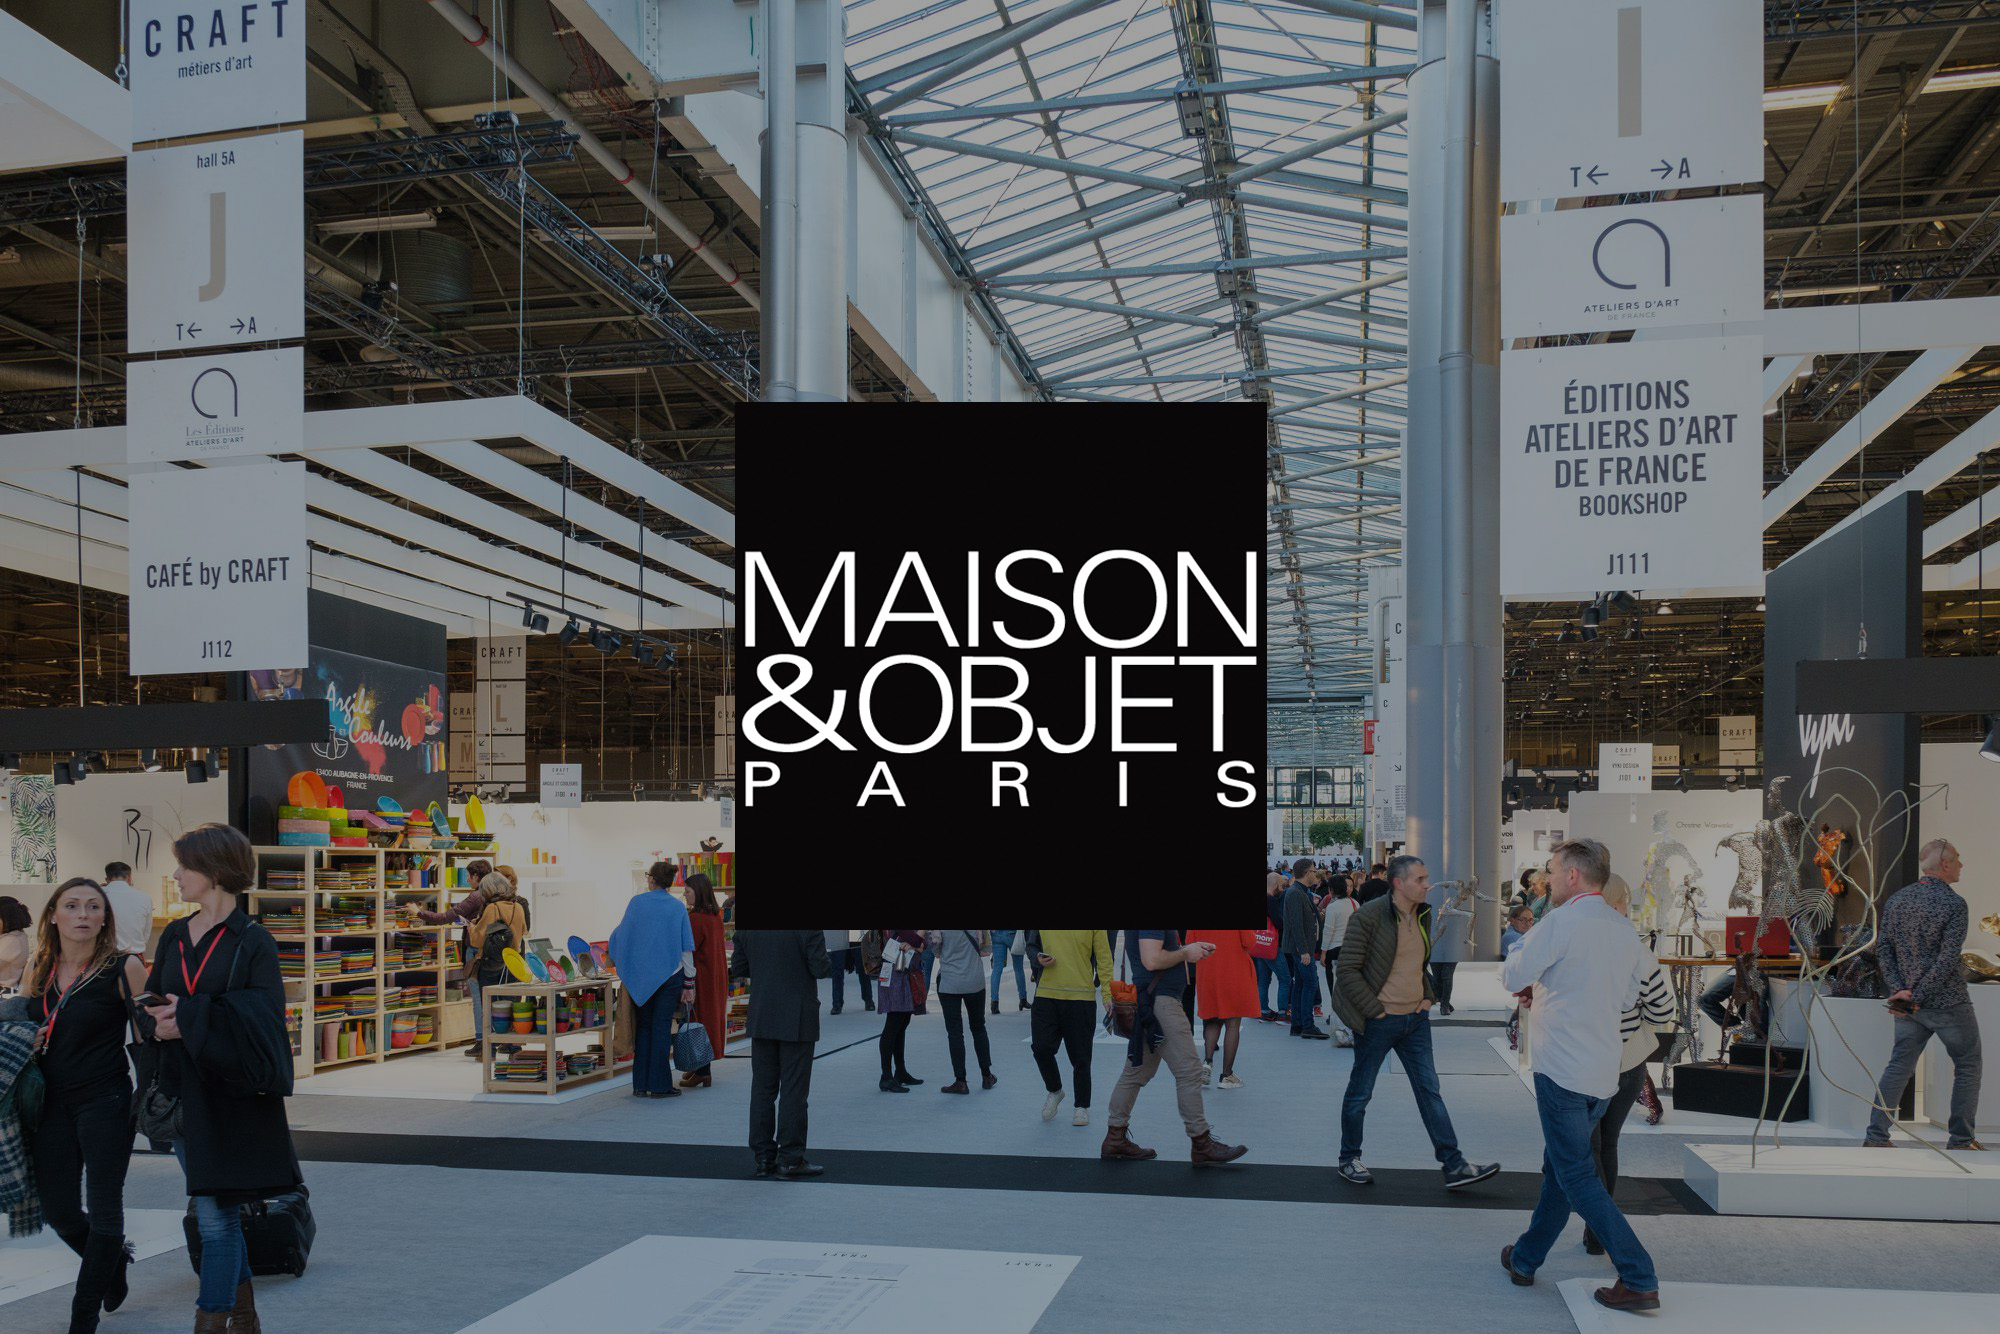 Maison & Objet September 2019 image feature on SBID interior design blog